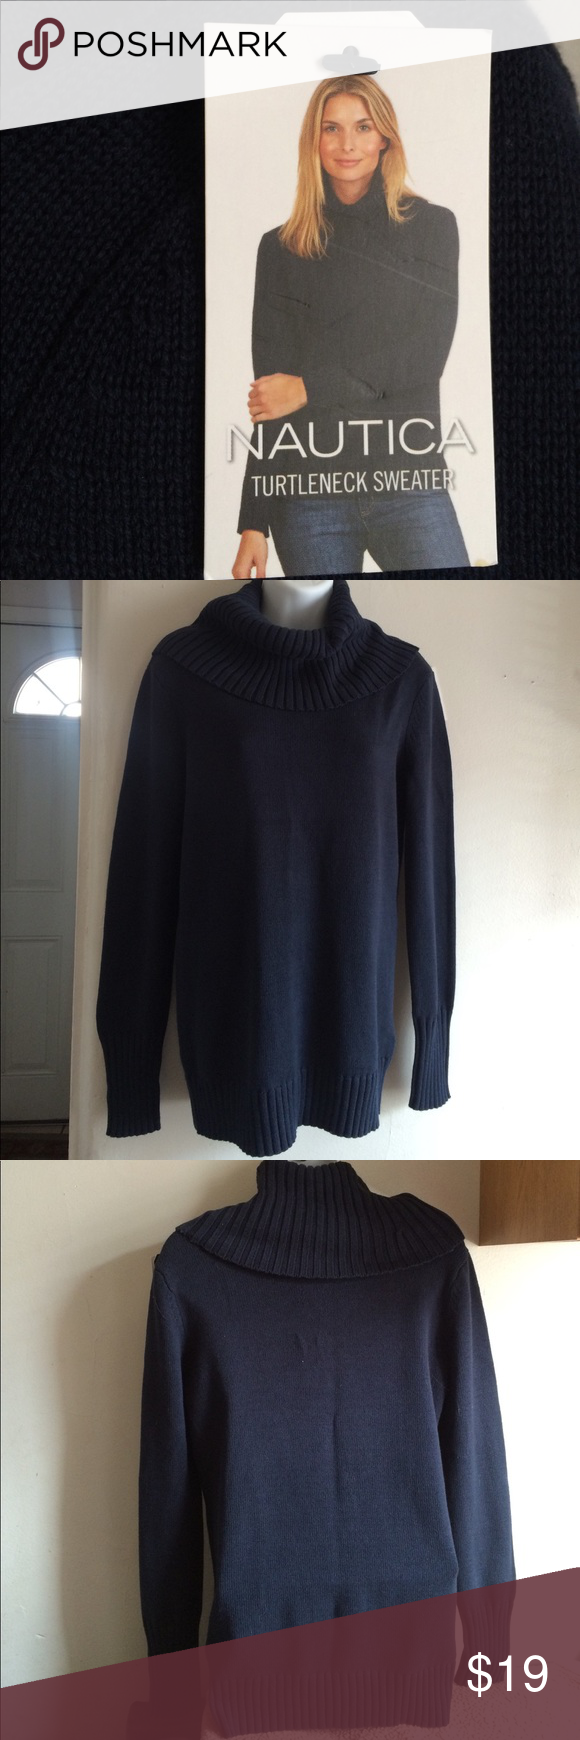 🍁NAUTICA-Turtleneck sweater🍁 | Navy blue, Navy and Cotton